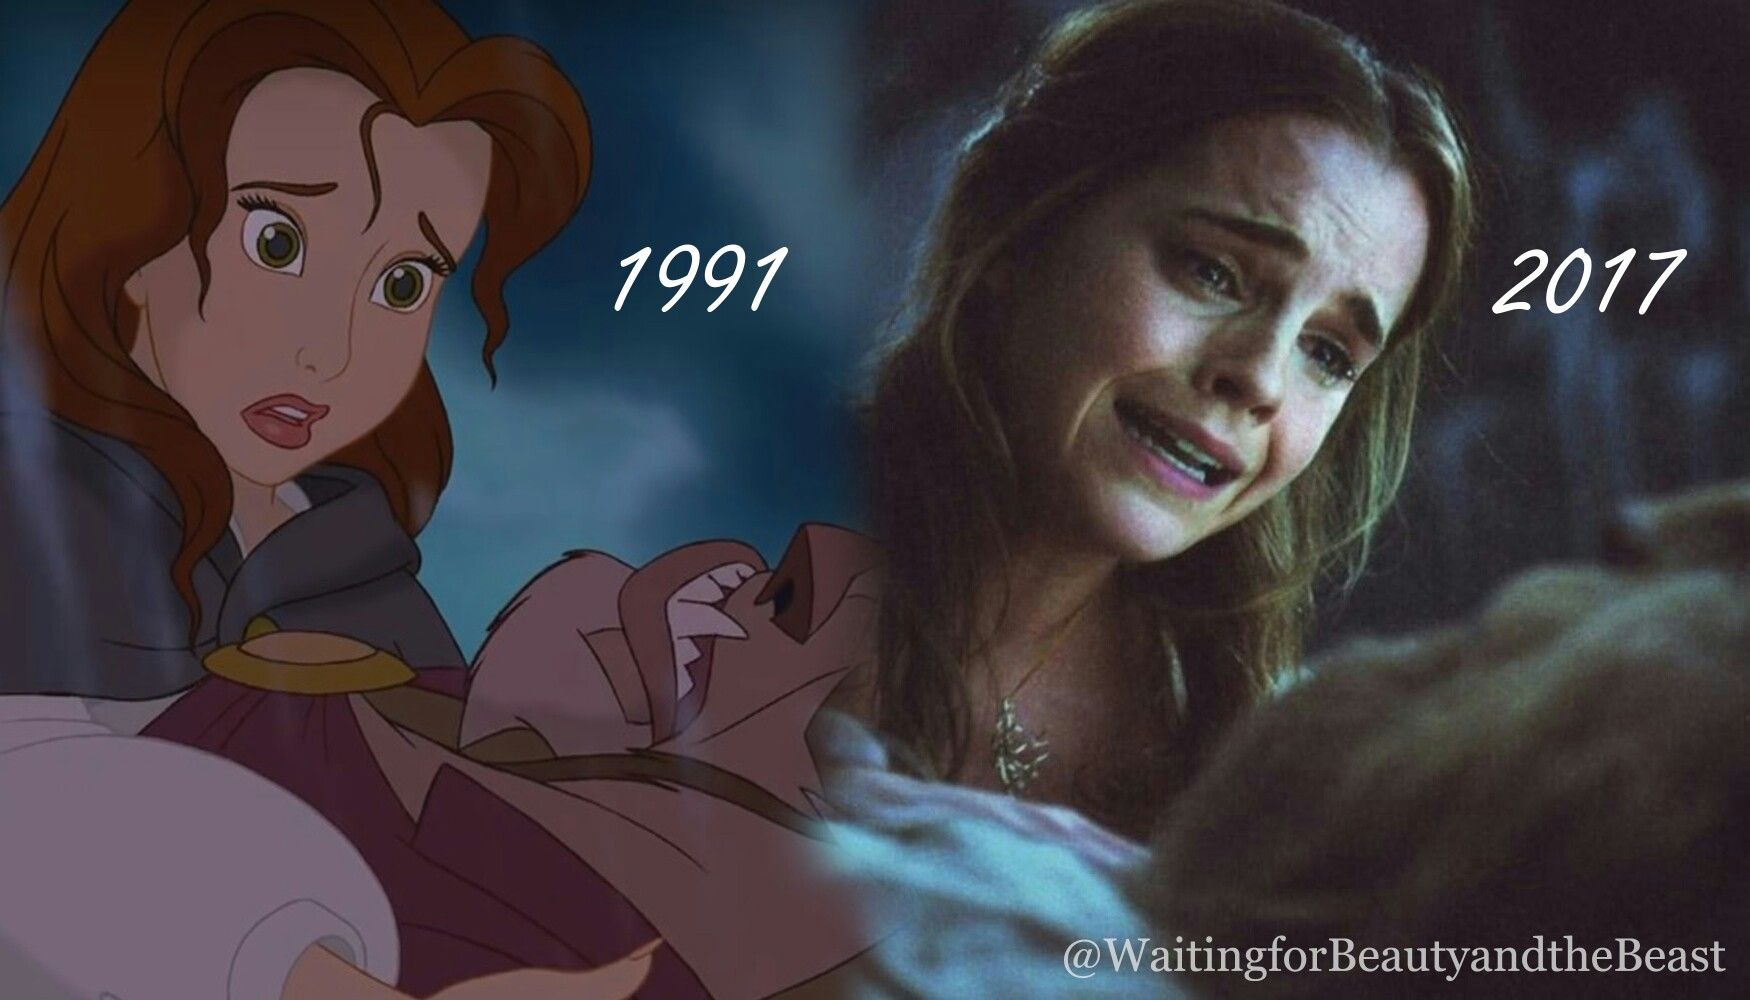 Beauty And The Beast 2017 Vs Beauty And The Beast 1991 Beauty And The Beast Movie The Beast Movie Disney Beauty And The Beast